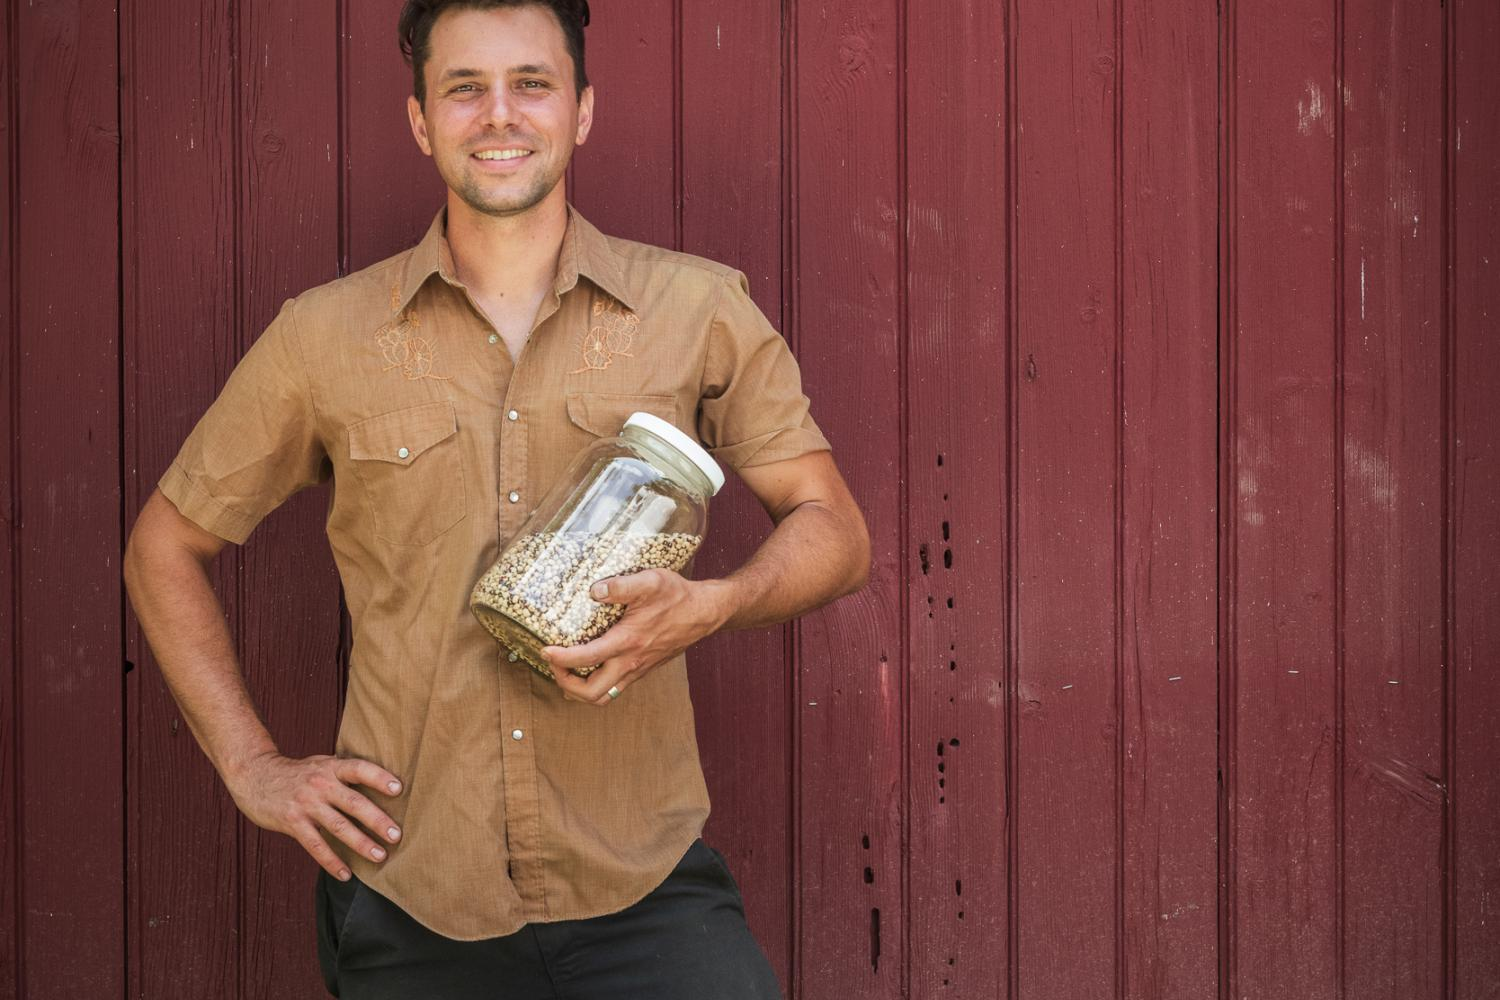 Artist Owen Taylor / TrueLove Seeds stands in front a deep red paneled wall, he wears dark denim work jeans and a short-sleeved workshirt. Owen leans to the side, one hand on his hip and the other balancing a clear mason jar filled with seeds. Owen smiles confidently at the camera.